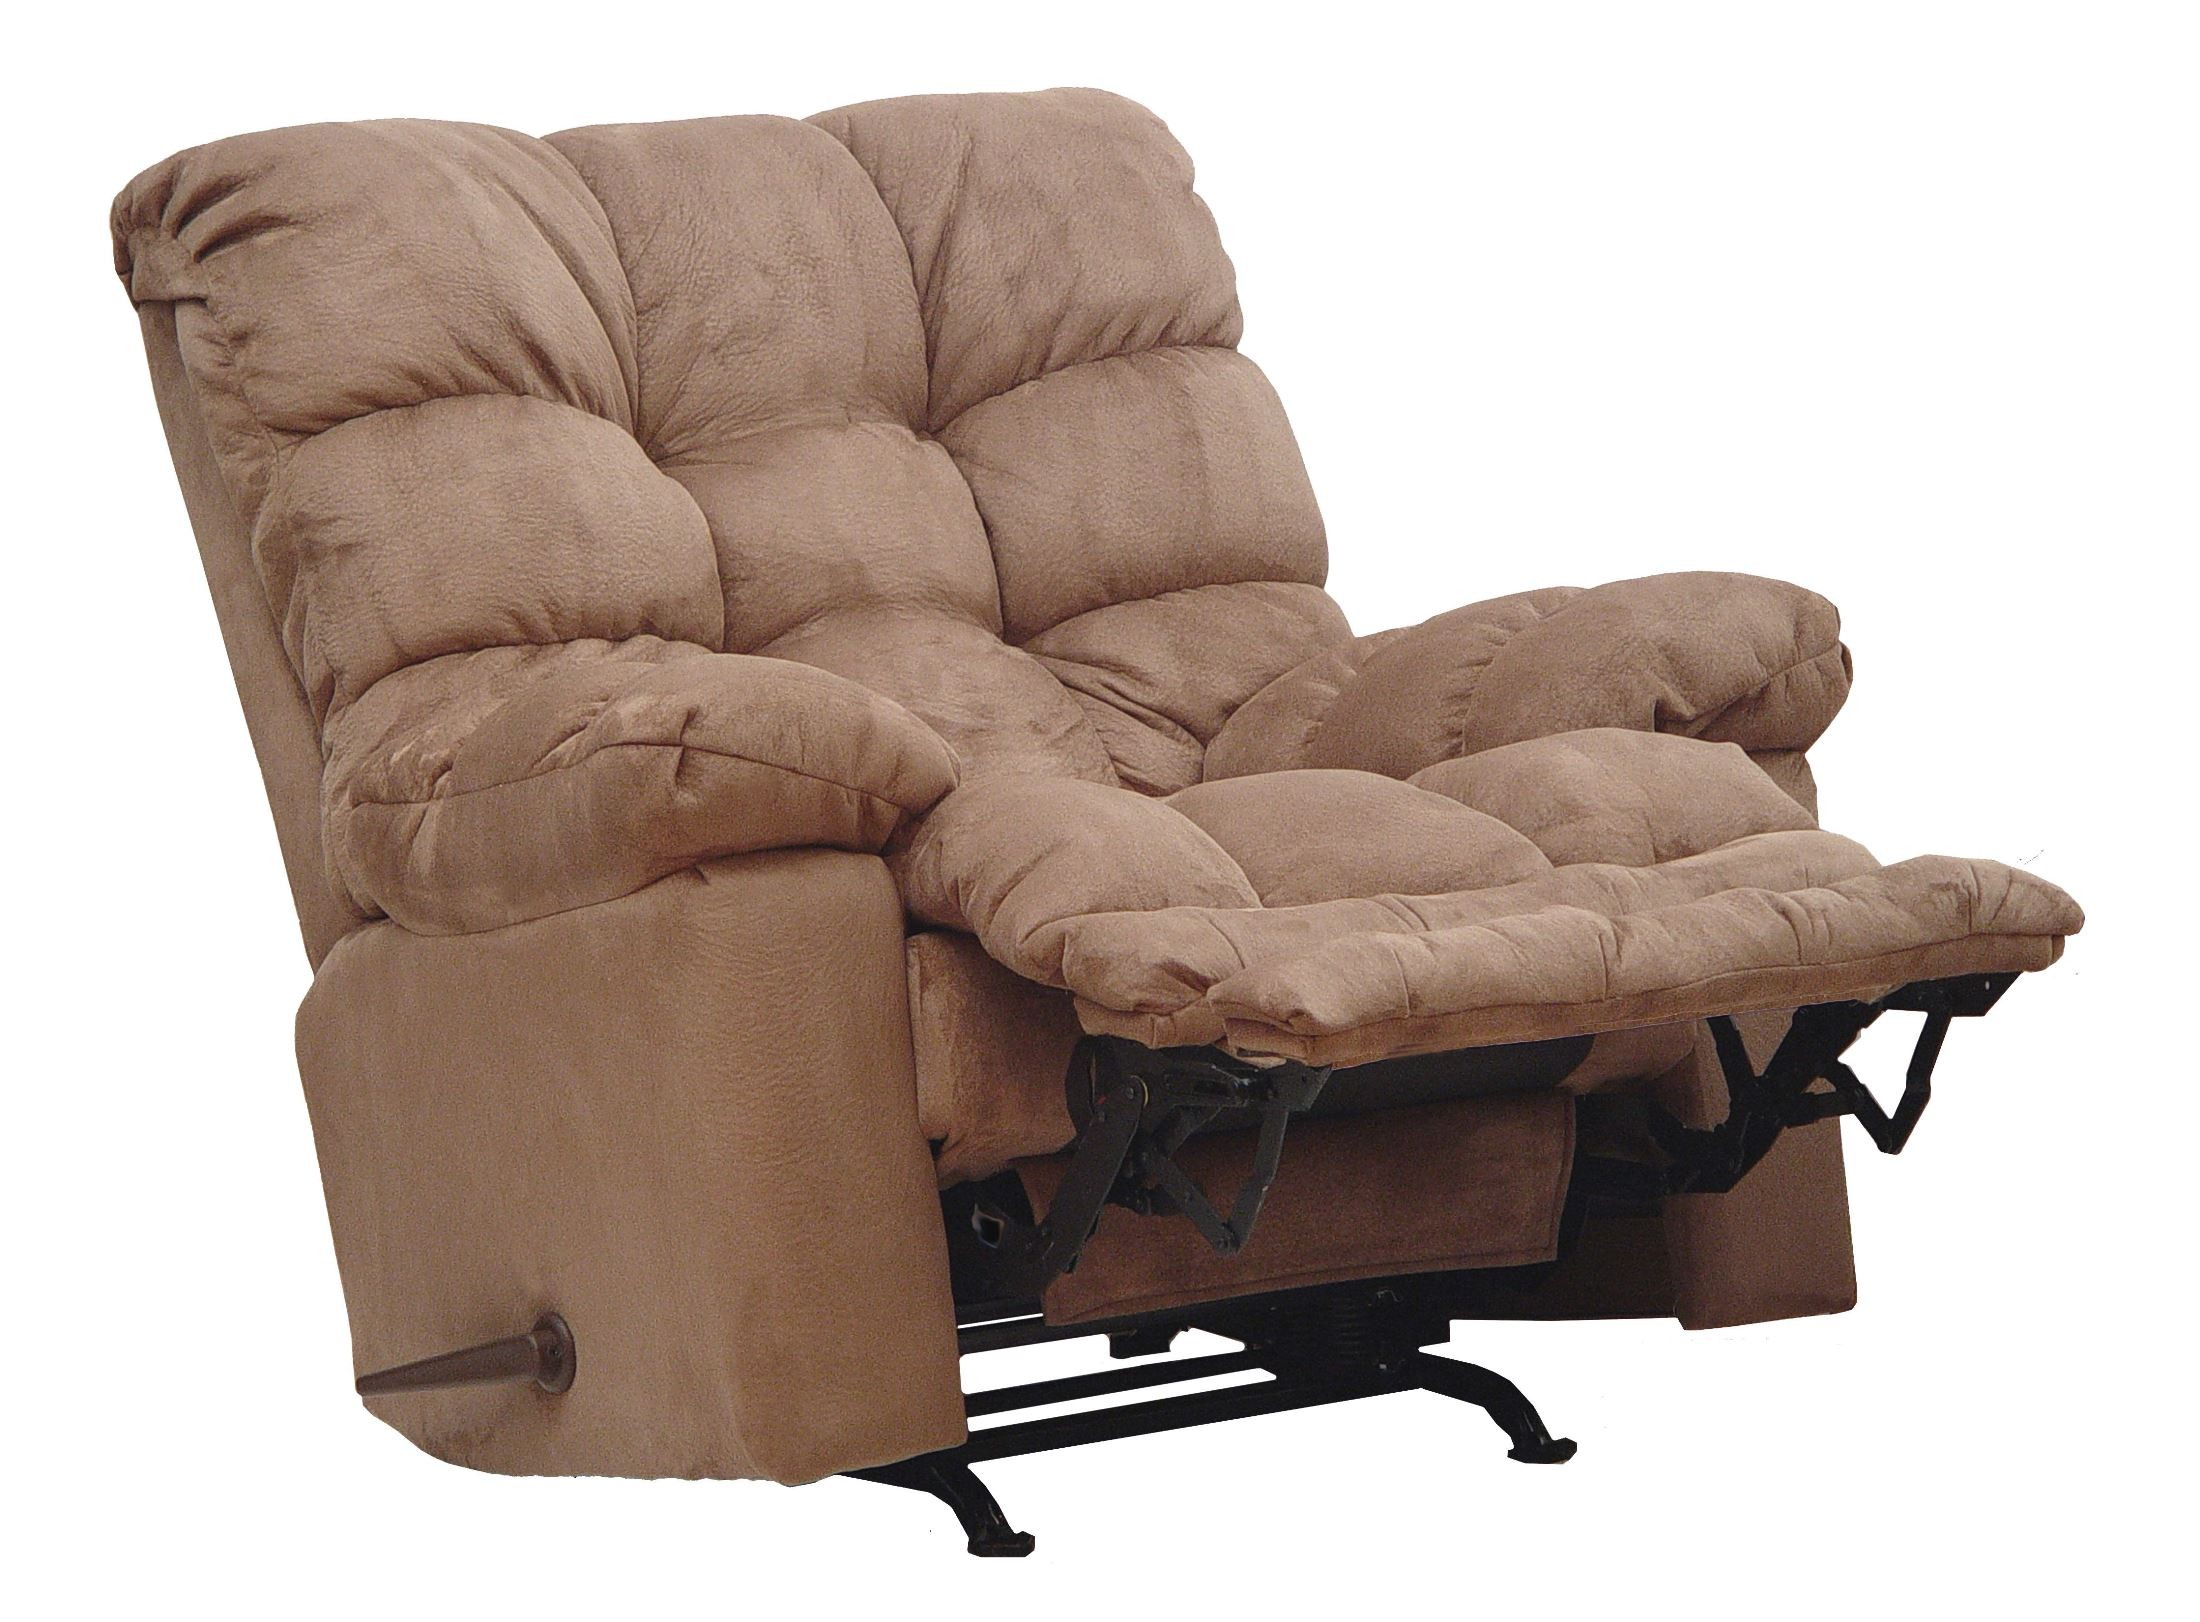 Magnum saddle rocker recliner from catnapper 546892000000 for Catnapper cloud nine chaise recliner